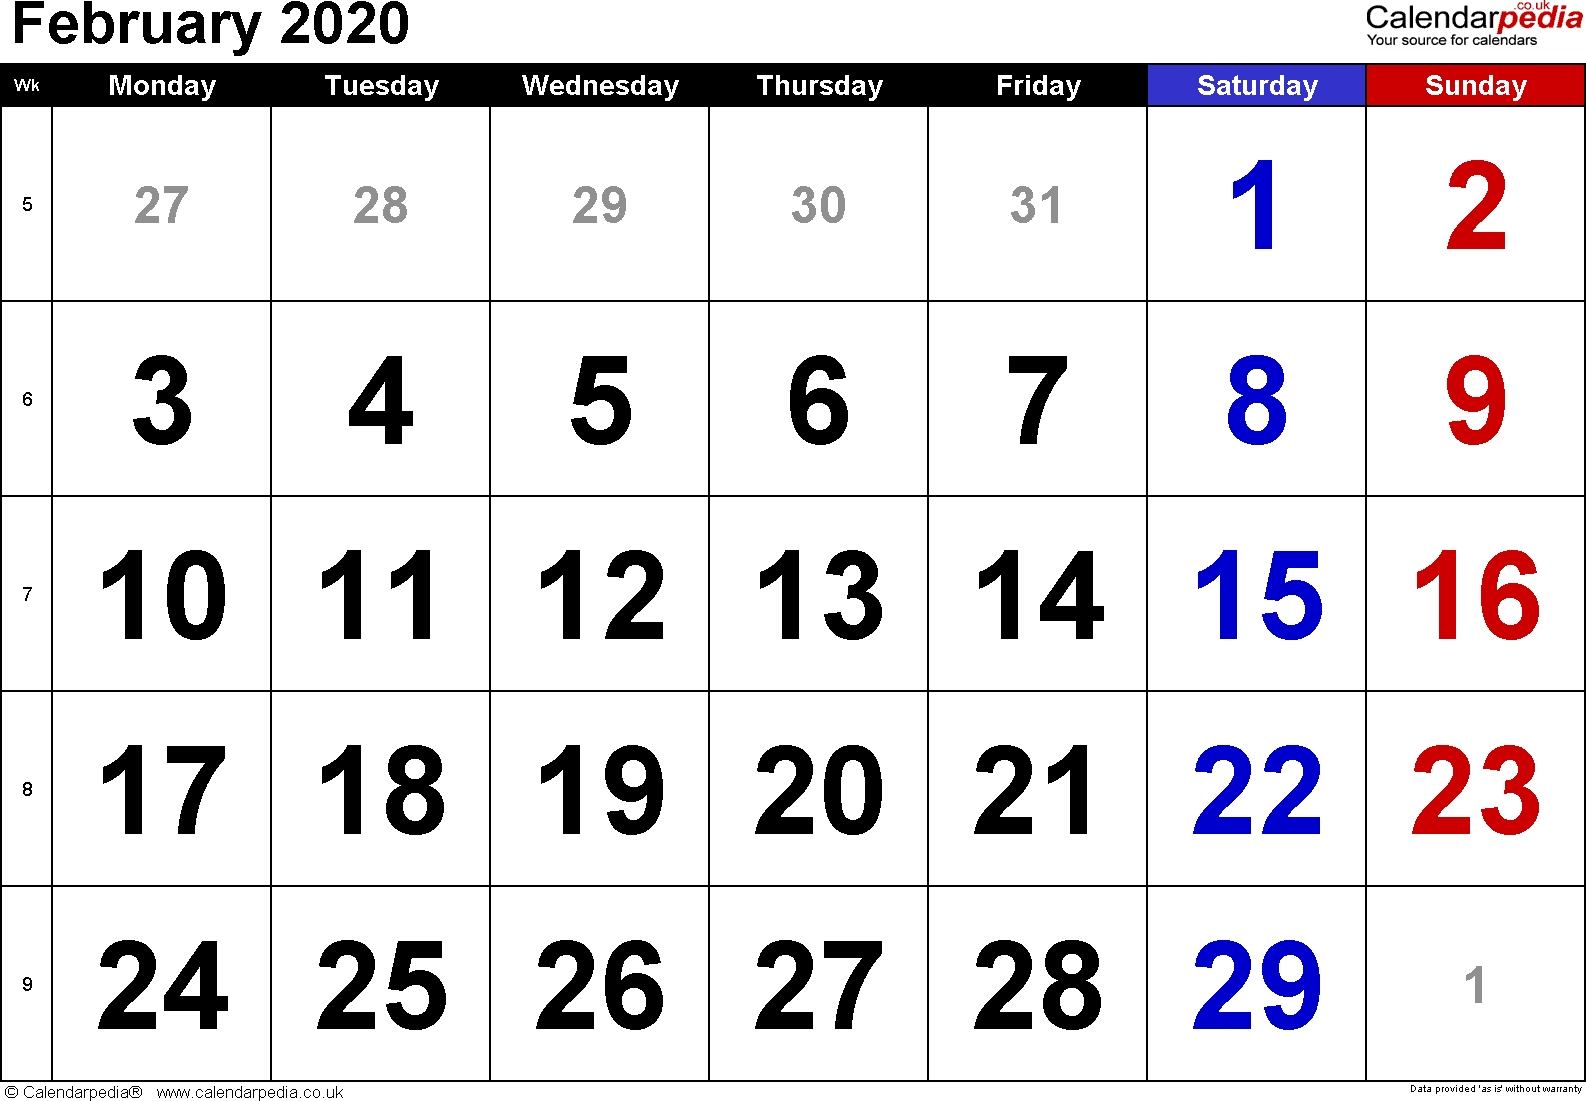 Calendar February 2020 Uk, Bank Holidays, Excel/pdf/word